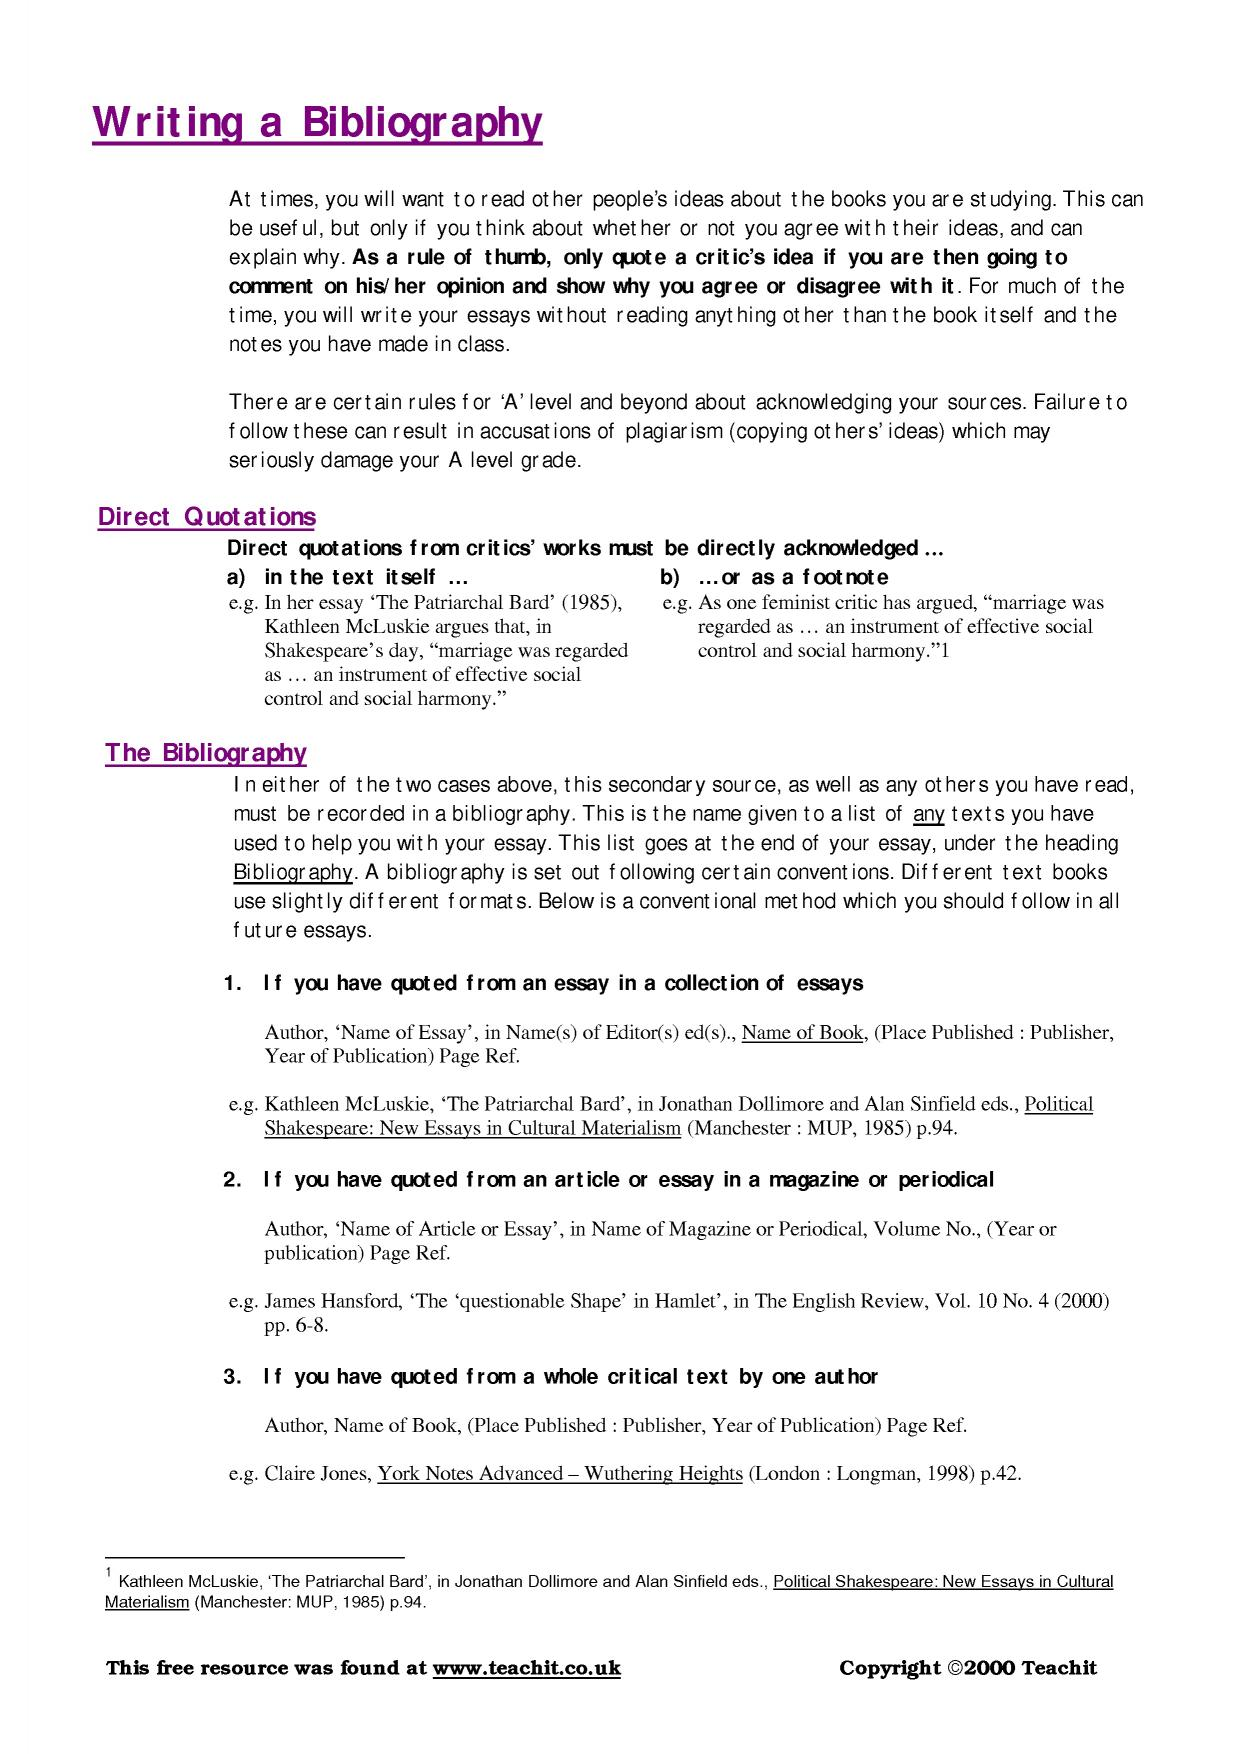 writing introduction essay ks3 Video: practicing essay writing to get better at writing it can be tough to practice your essay-writing skills on your own without a teacher's feedback with some time and practice (and by using this game plan), you'll be on your way to practicing, evaluating and improving your writing.